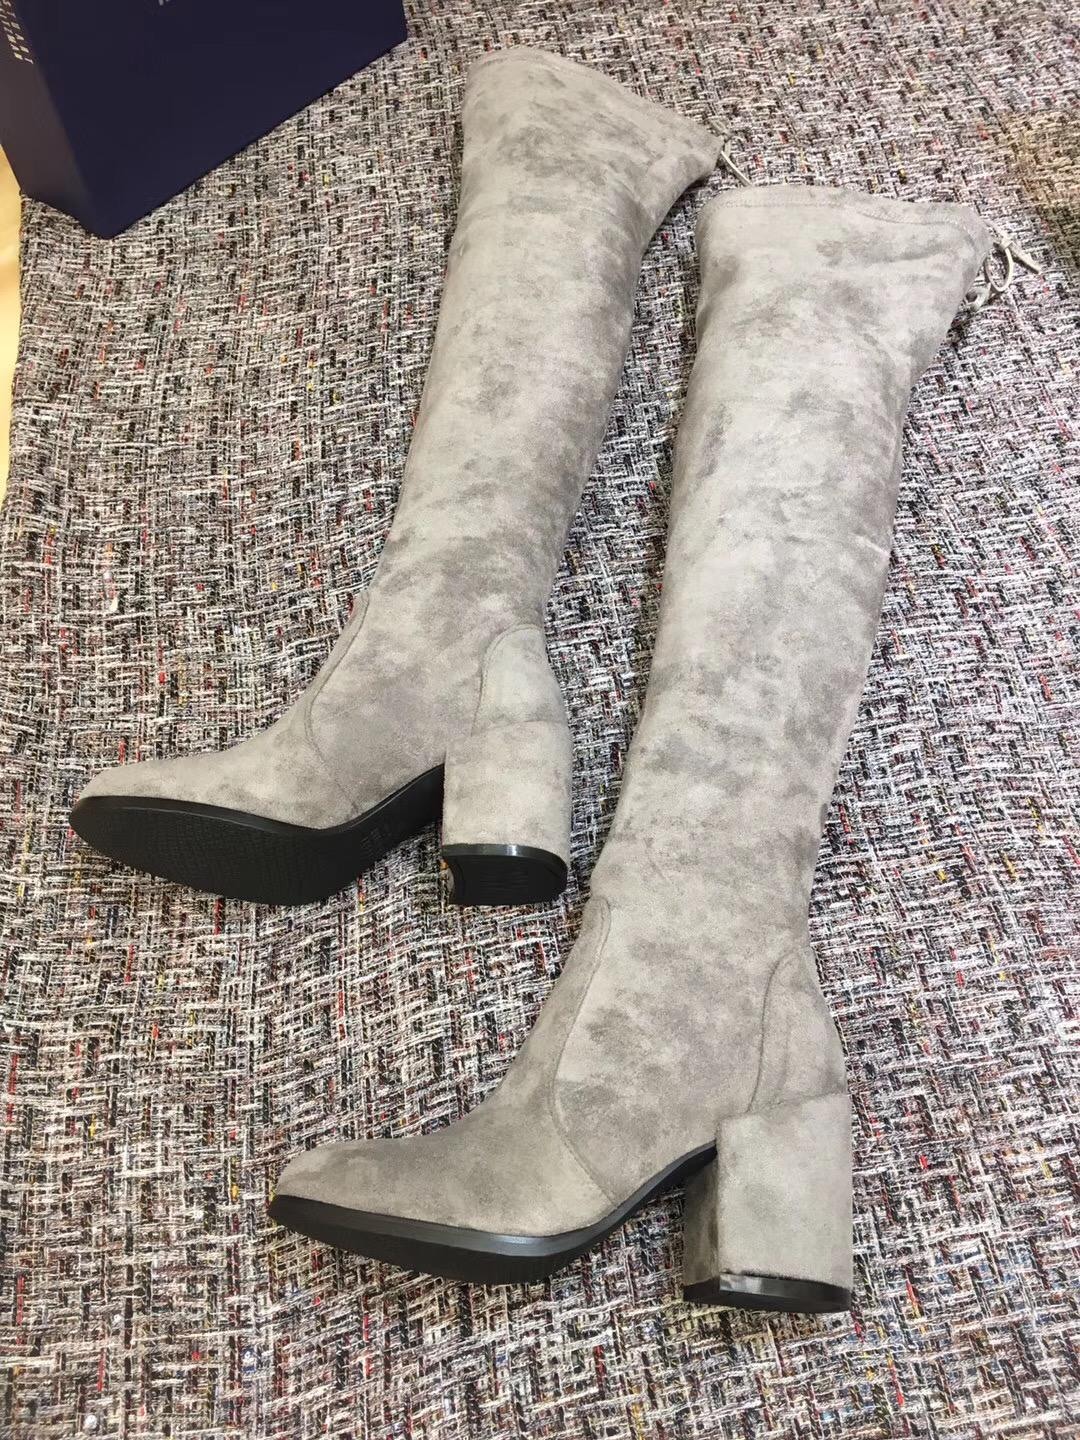 095f83b143fd The Tieland Top Original Quality SW Brand Boots Over The Knee Block Heel  Suede Leather Slim Boots Elstic Pull On Women Thigh High Boots Black Boots  For ...